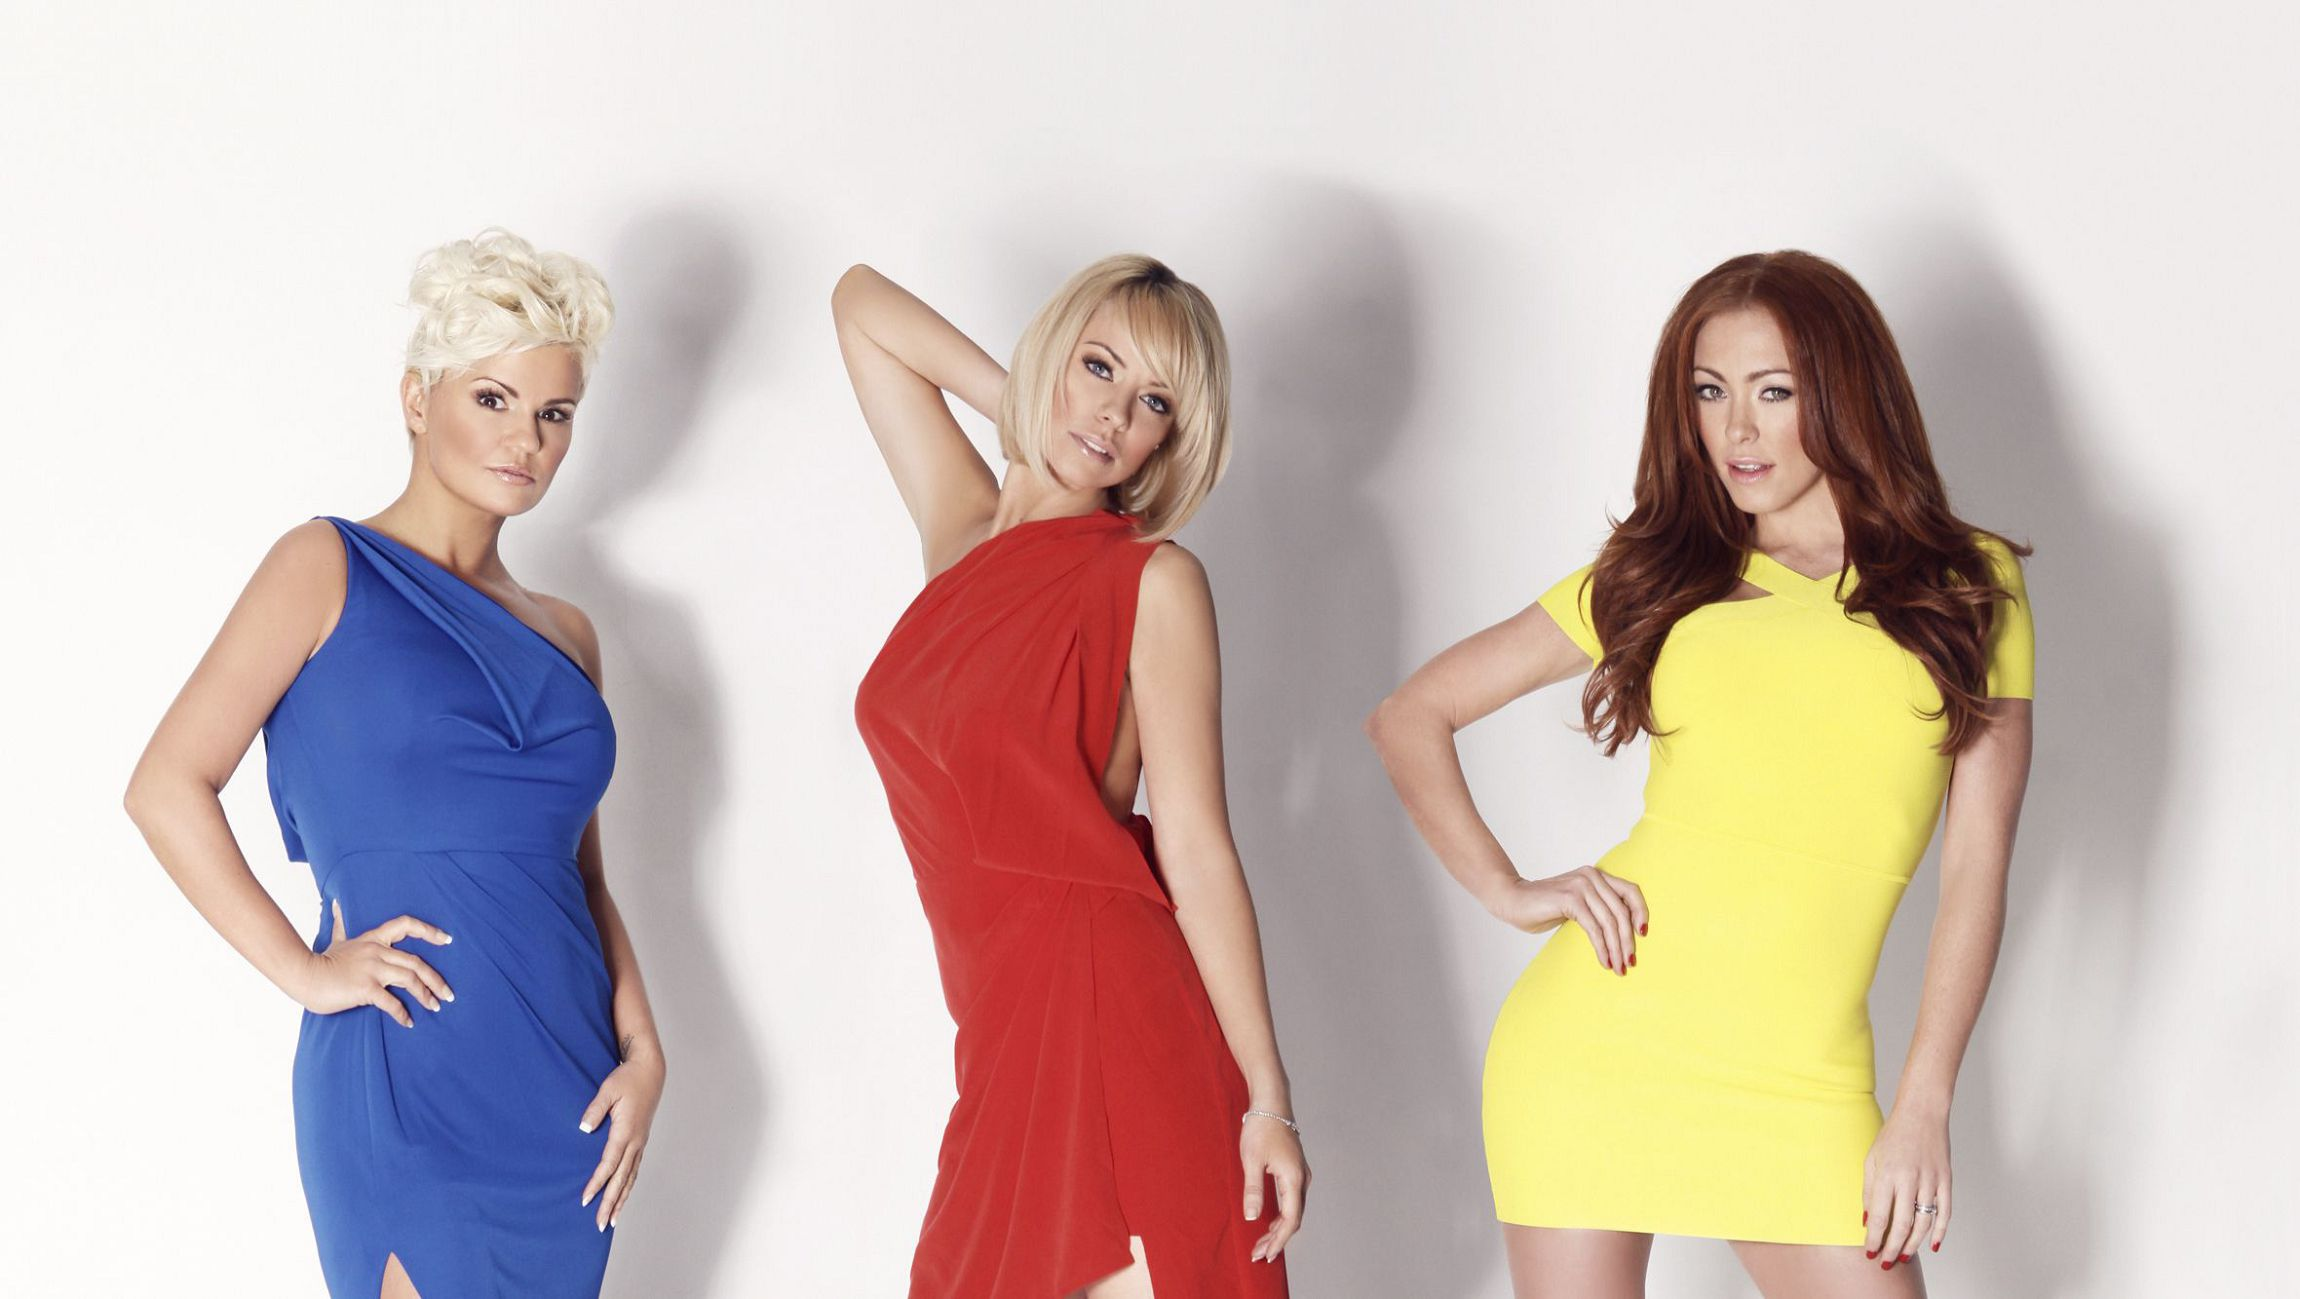 Atomic Kitten High Quality Wallpapers